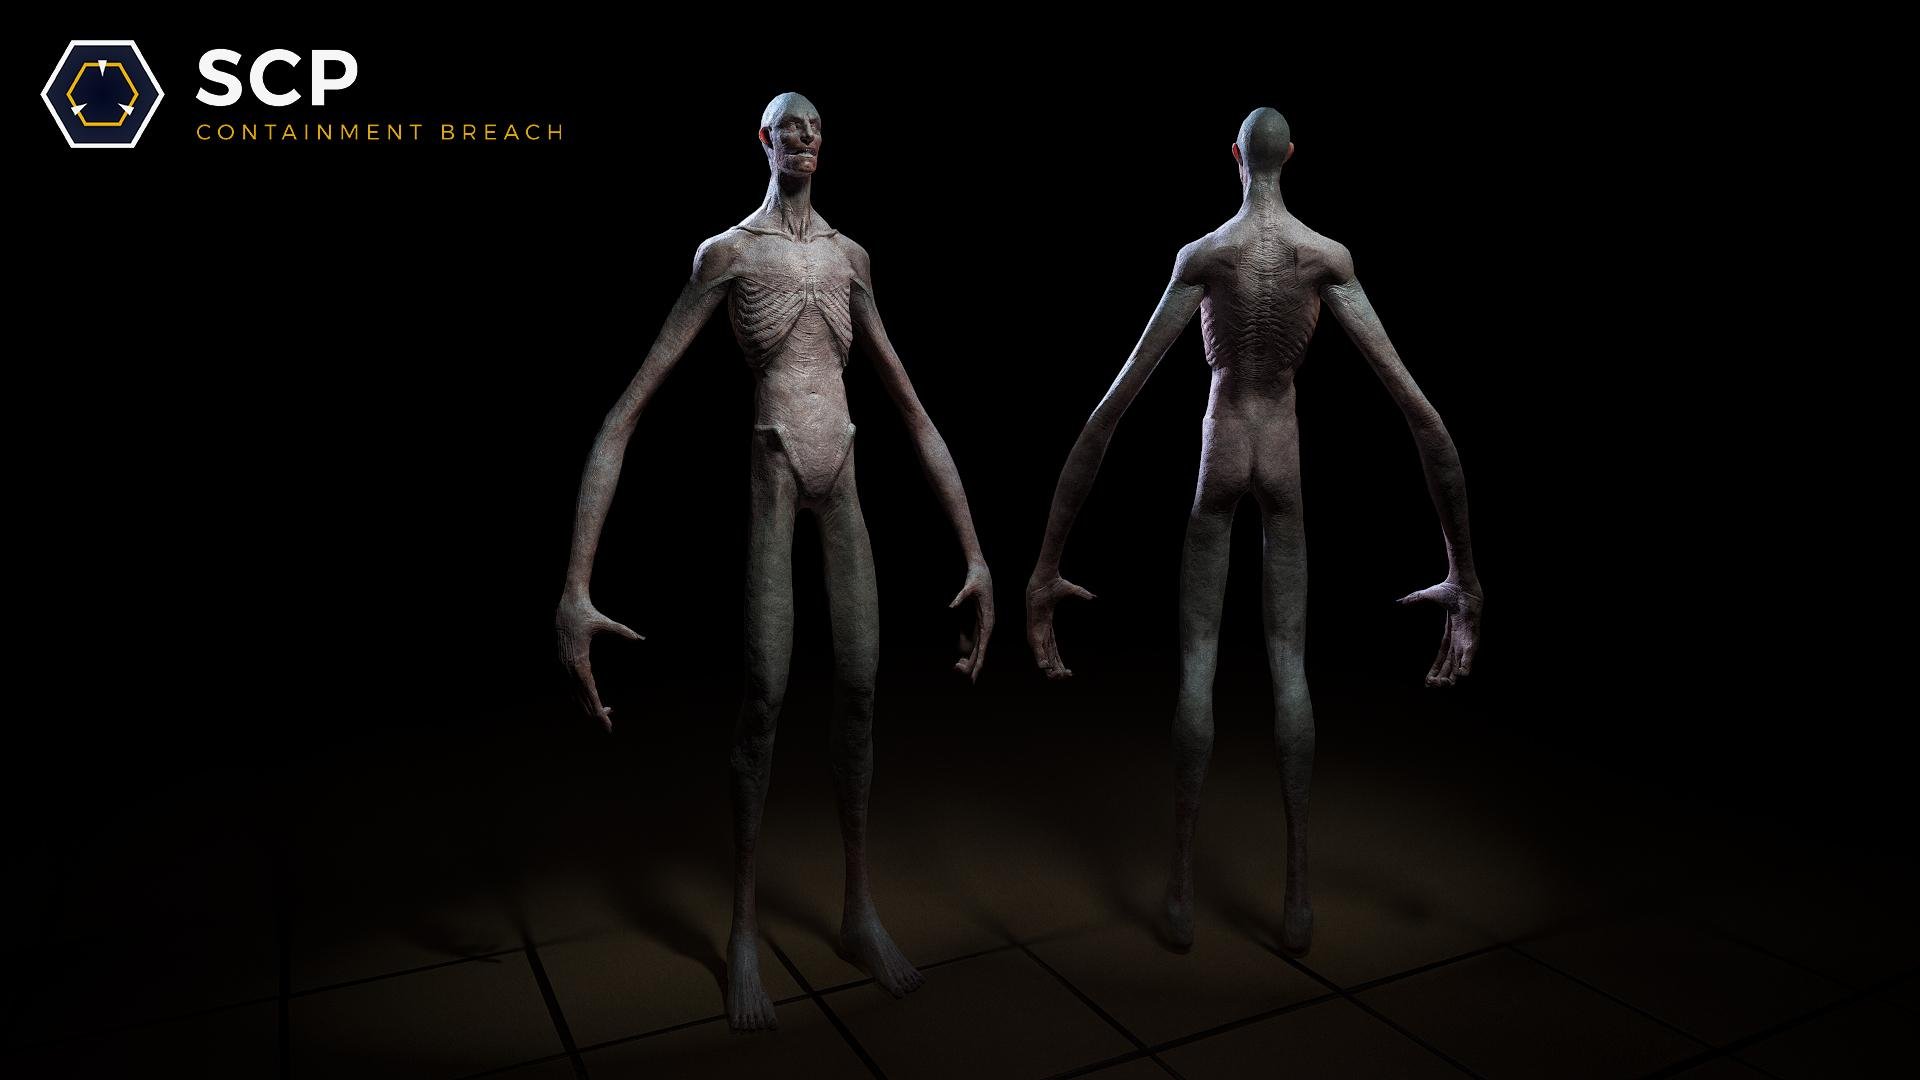 SCP Unity   SCP 096s finalized model More pics video in 1920x1080